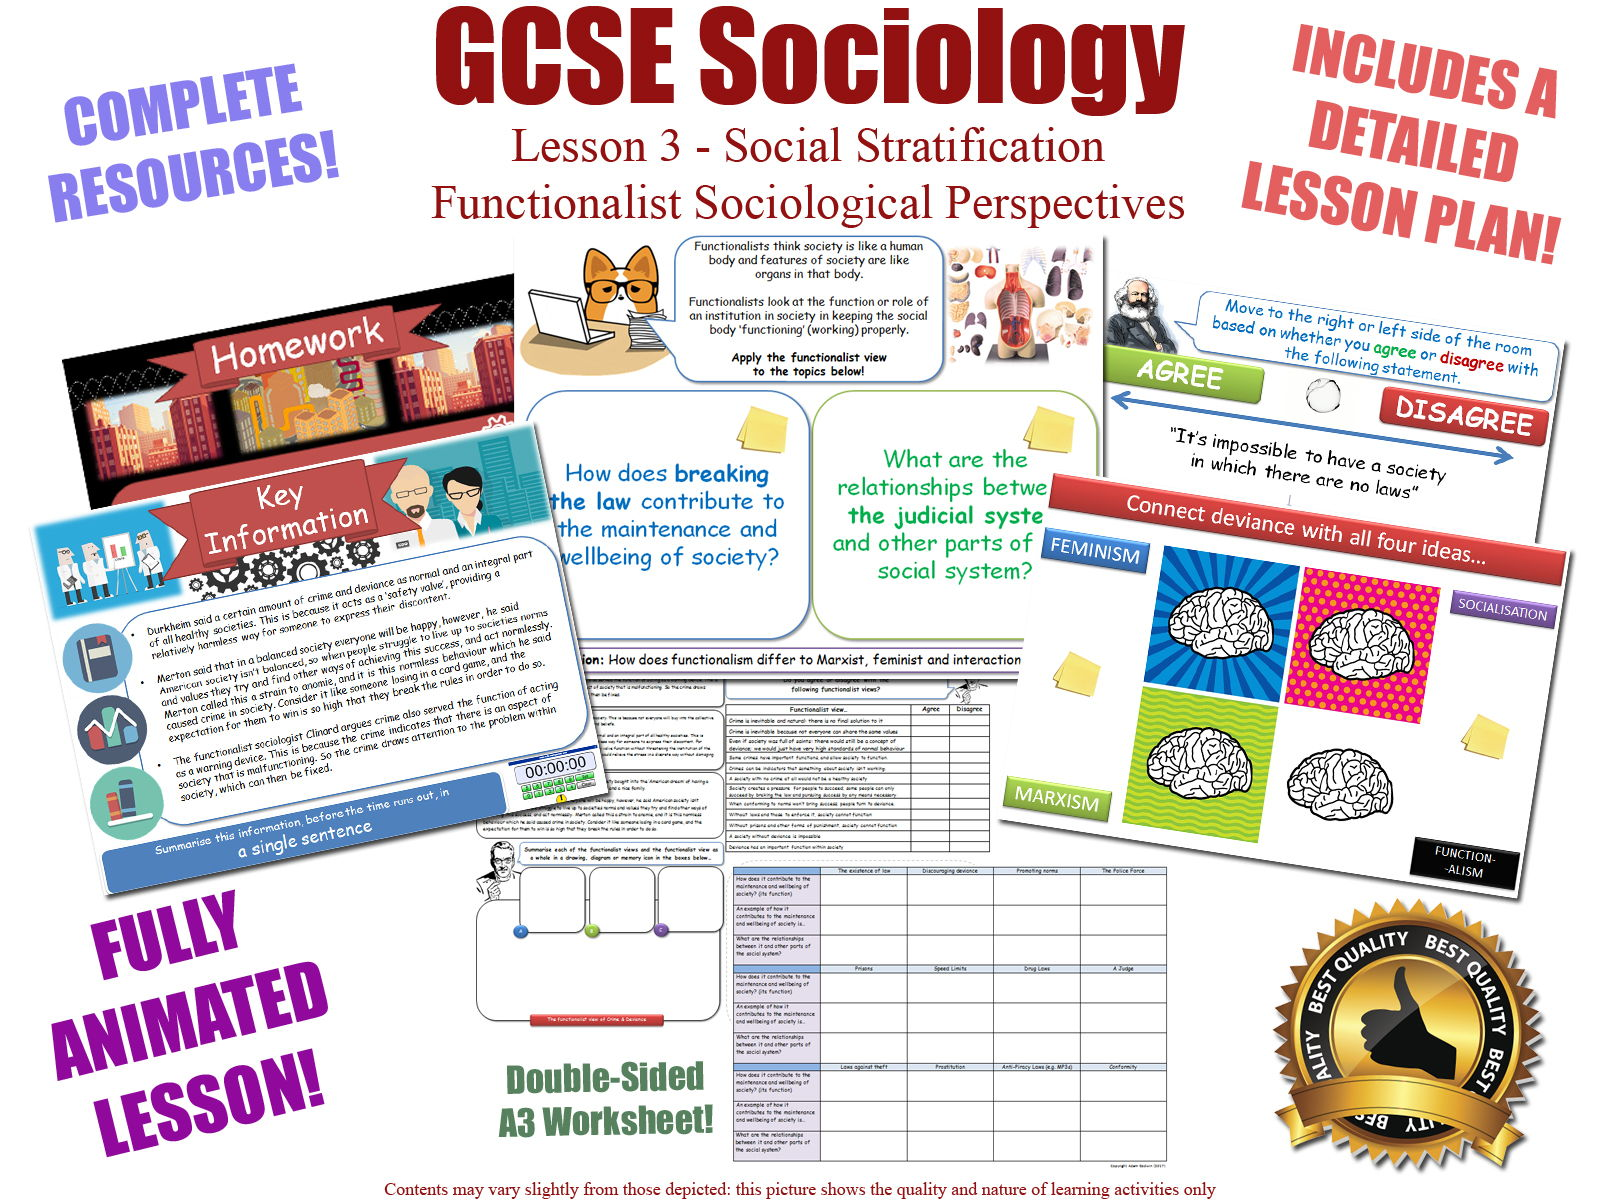 GCSE Sociology - Functionalist Perspectives Bundle (AQA) 4 x Complete lessons